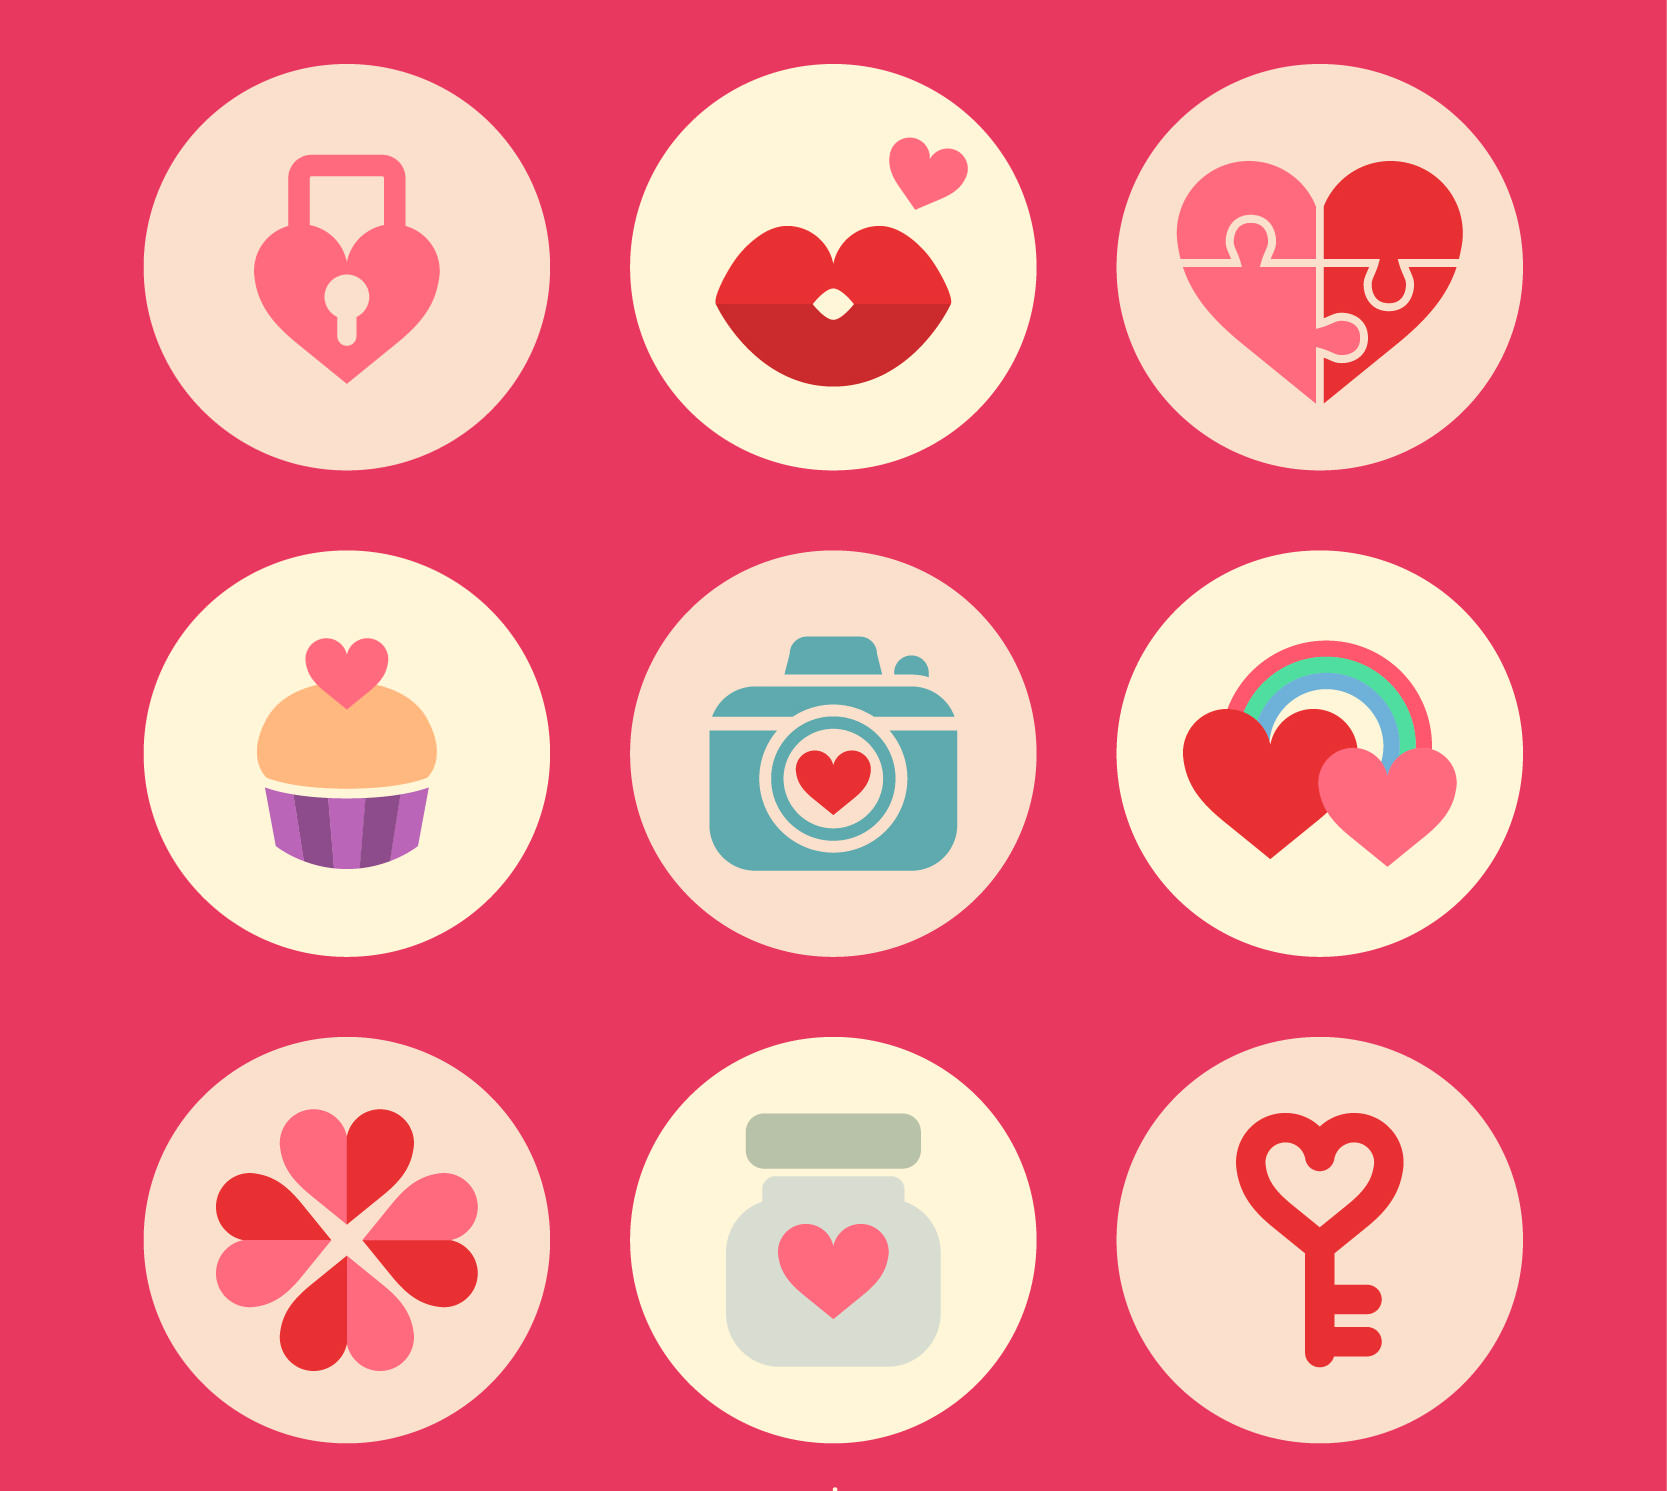 Lovely Valentine's Day Badges Set in Flat Style Design